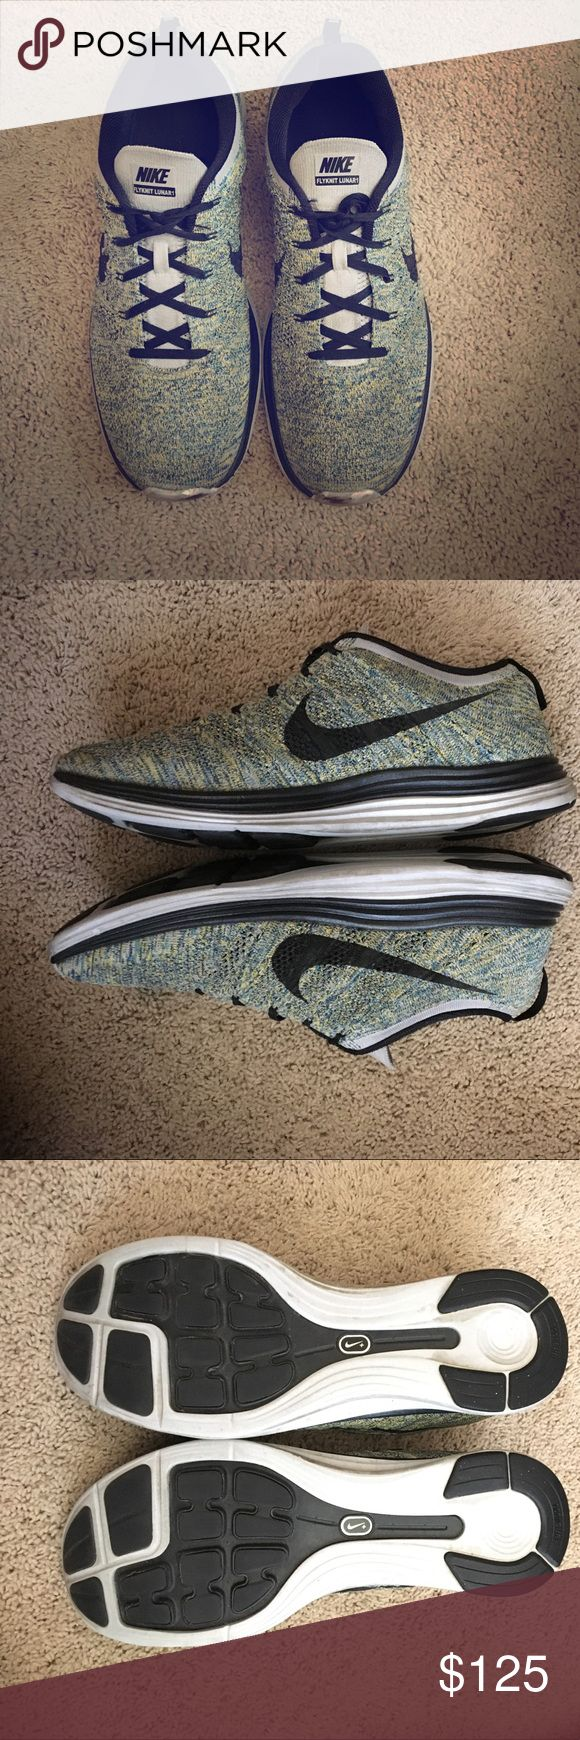 Nike FLYKNIT Lunar Nike Flyknit Lunar 1! Multicolor Men's Trainer Shoe! Size 12US! Bought these Overseas in Amsterdam! Nike Shoes Athletic Shoes